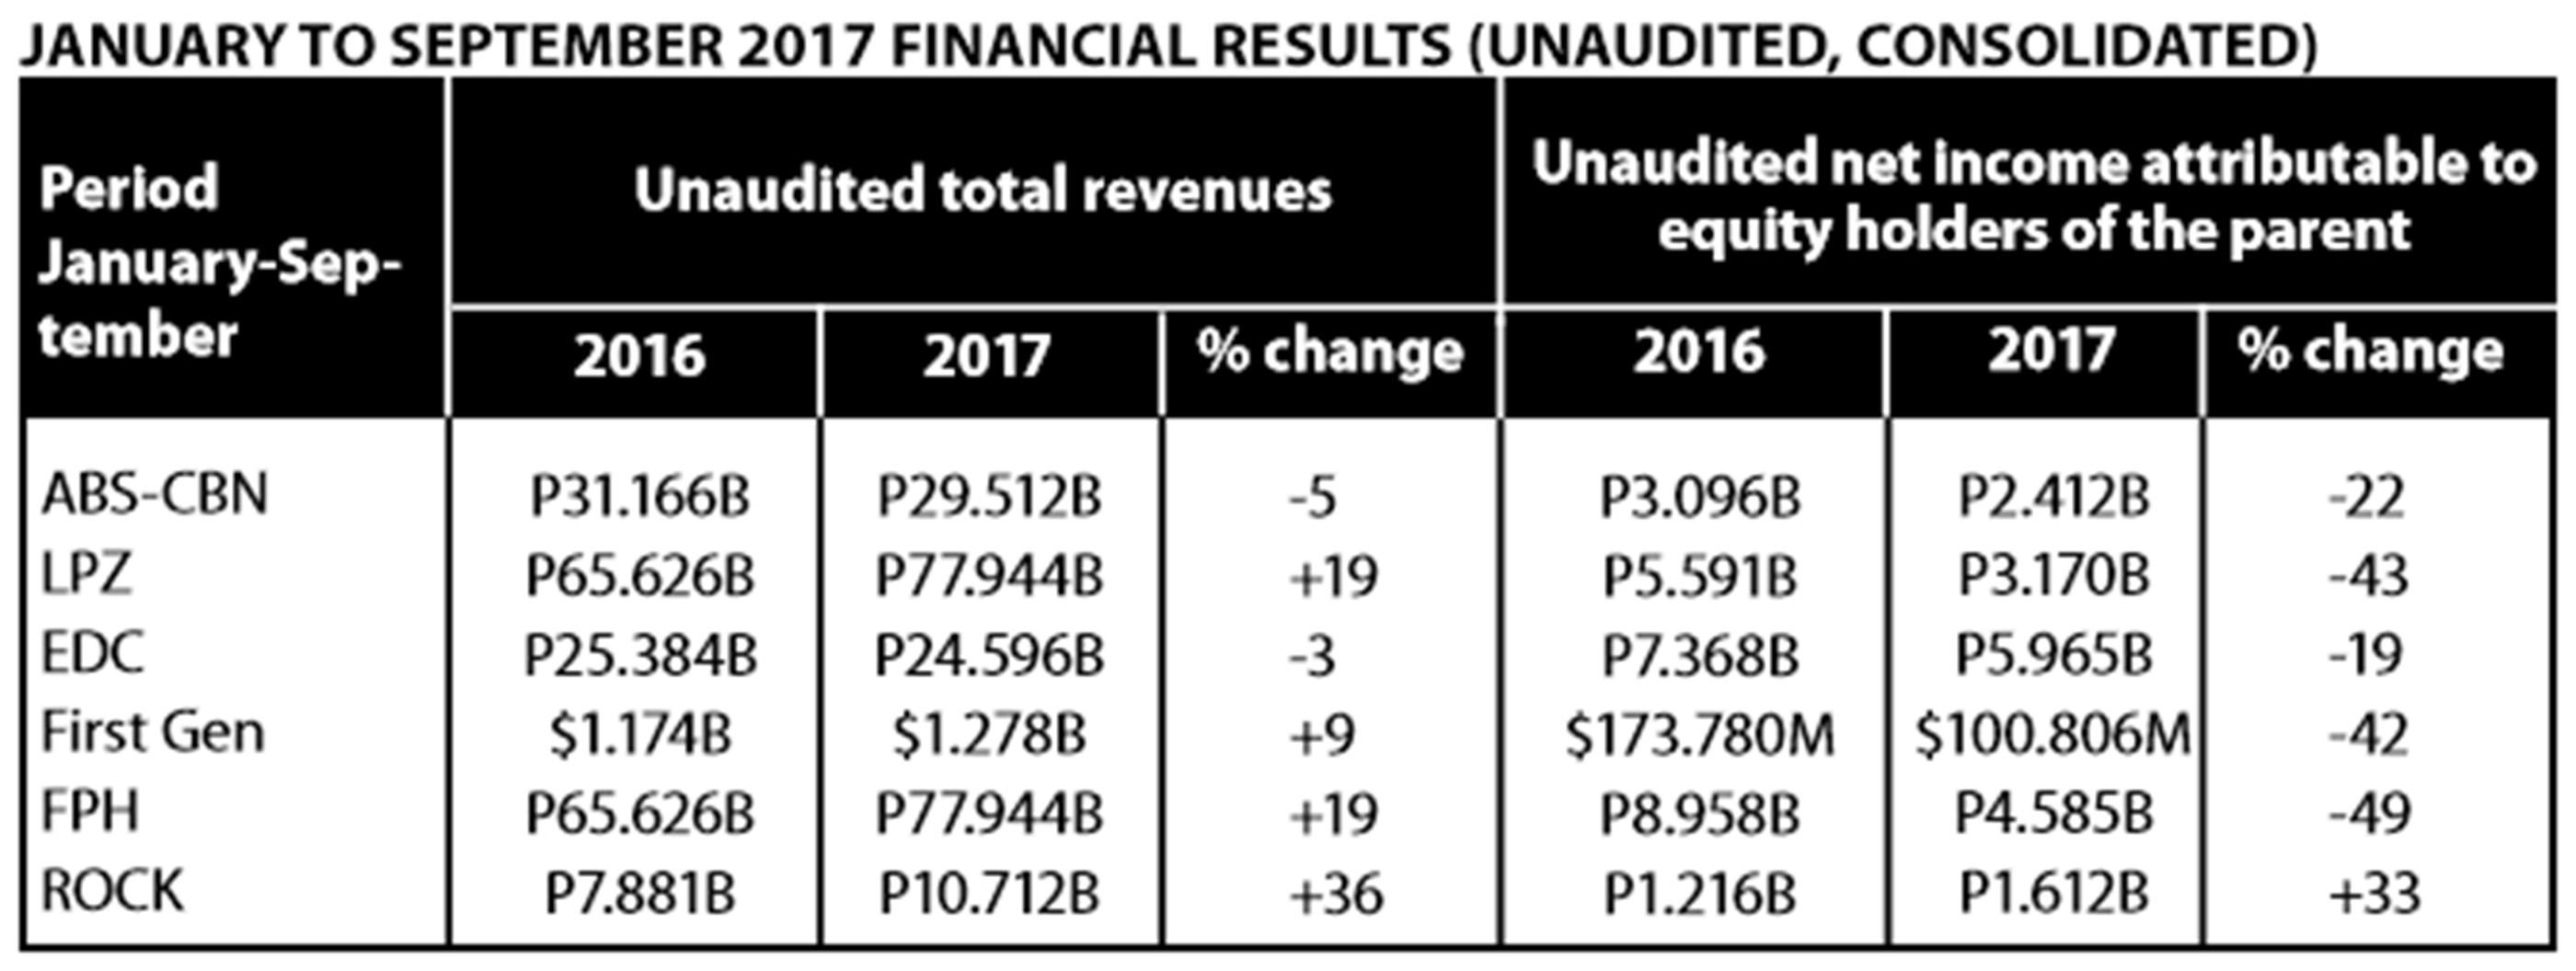 January to September 2017 Financial Results (Unaudited, Consolidated)